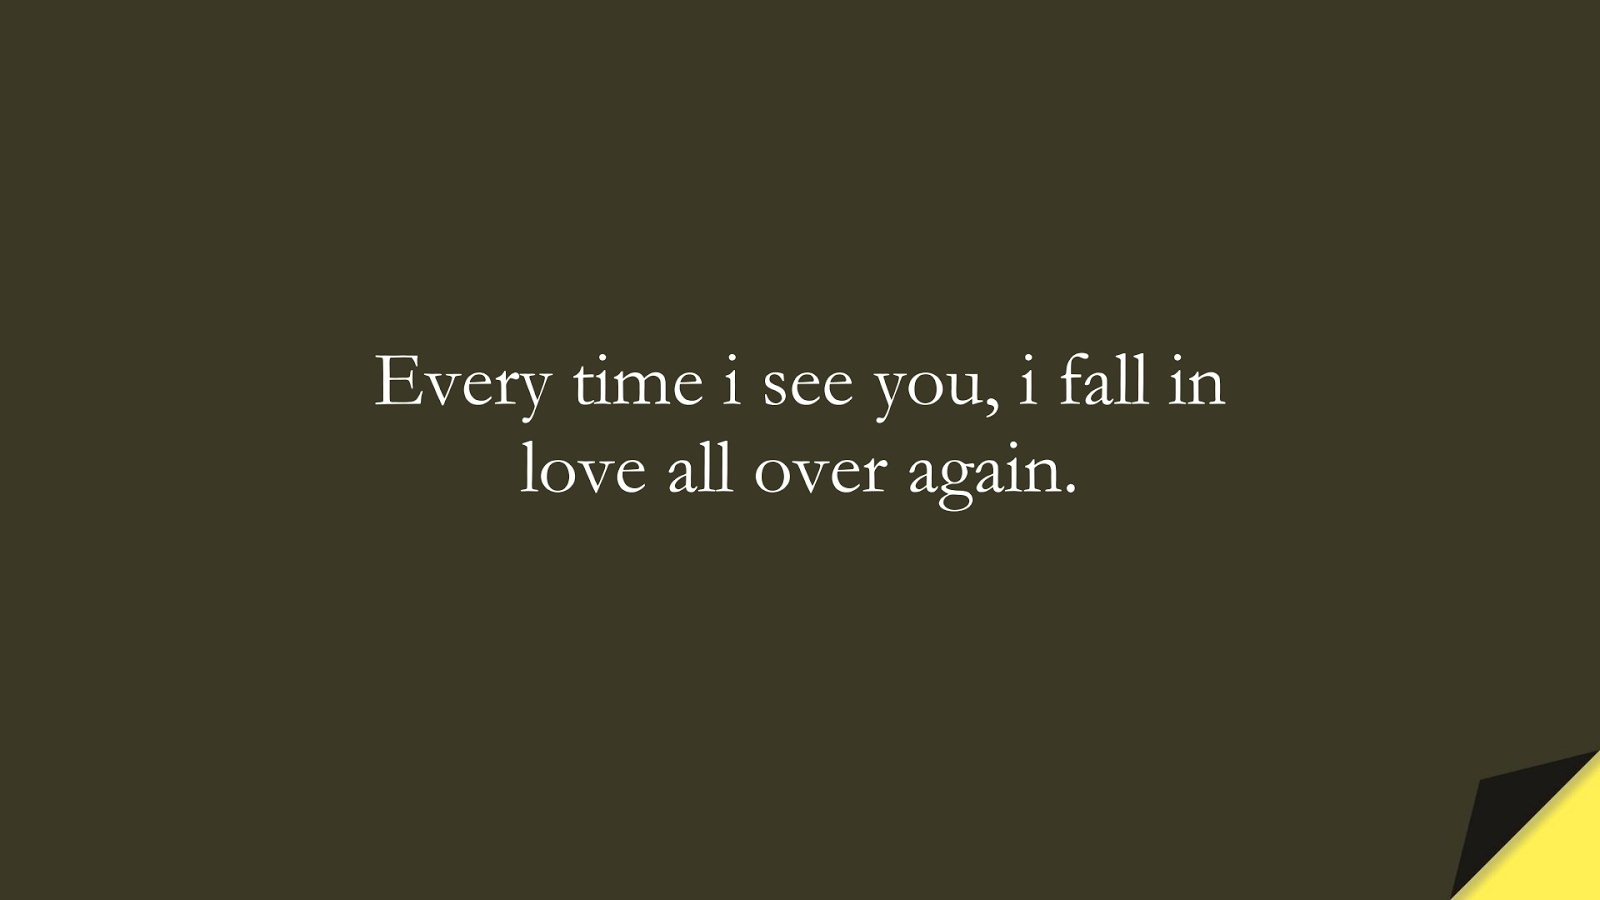 Every time i see you, i fall in love all over again.FALSE